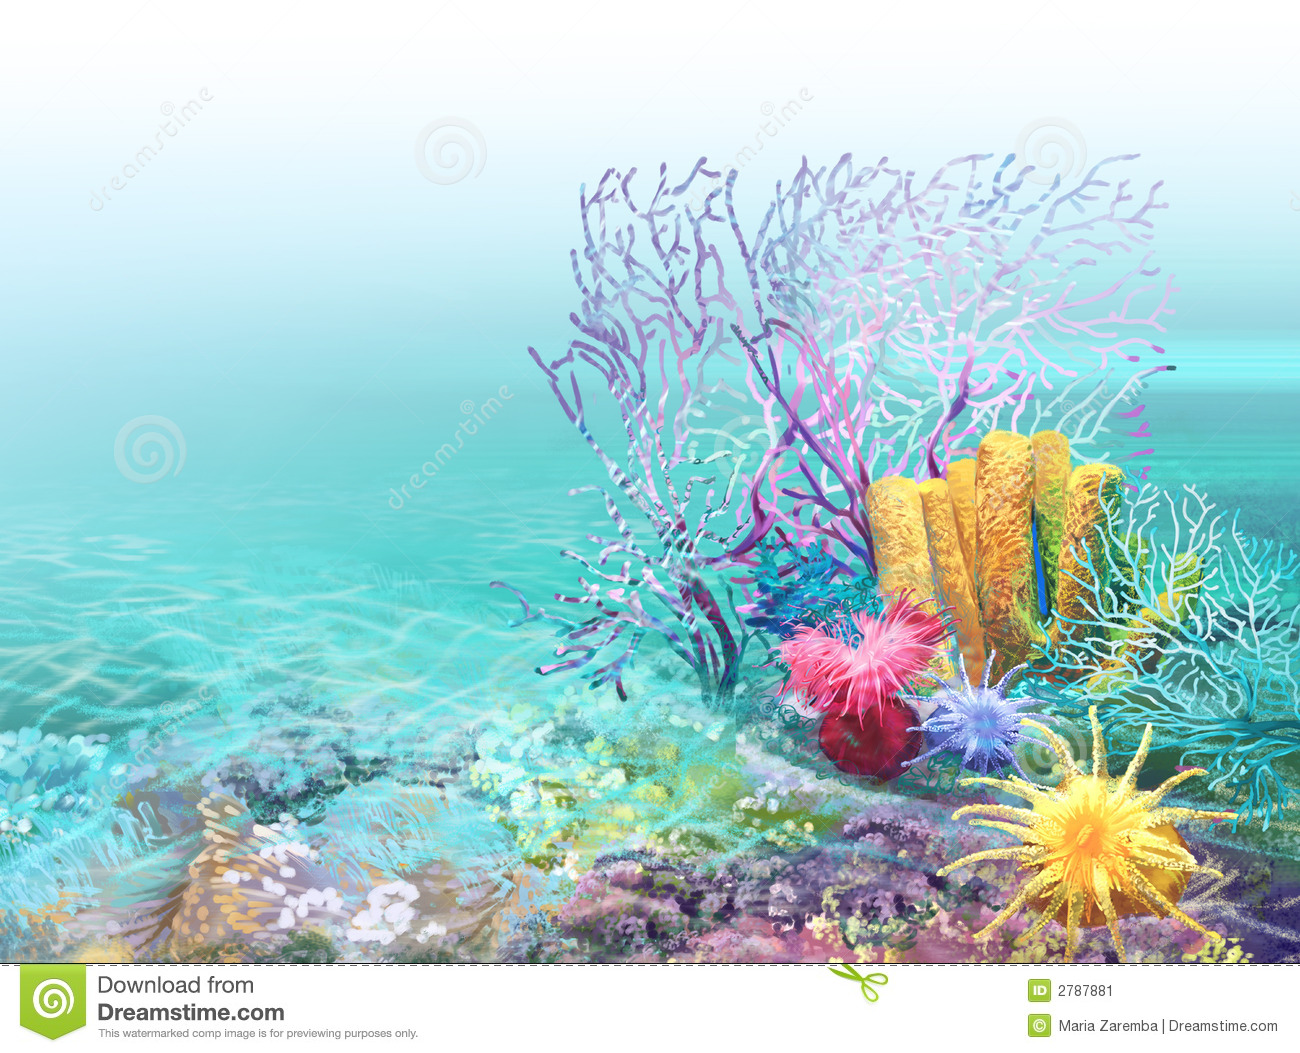 Coral Reef Background Stock Image - Image: 2787881